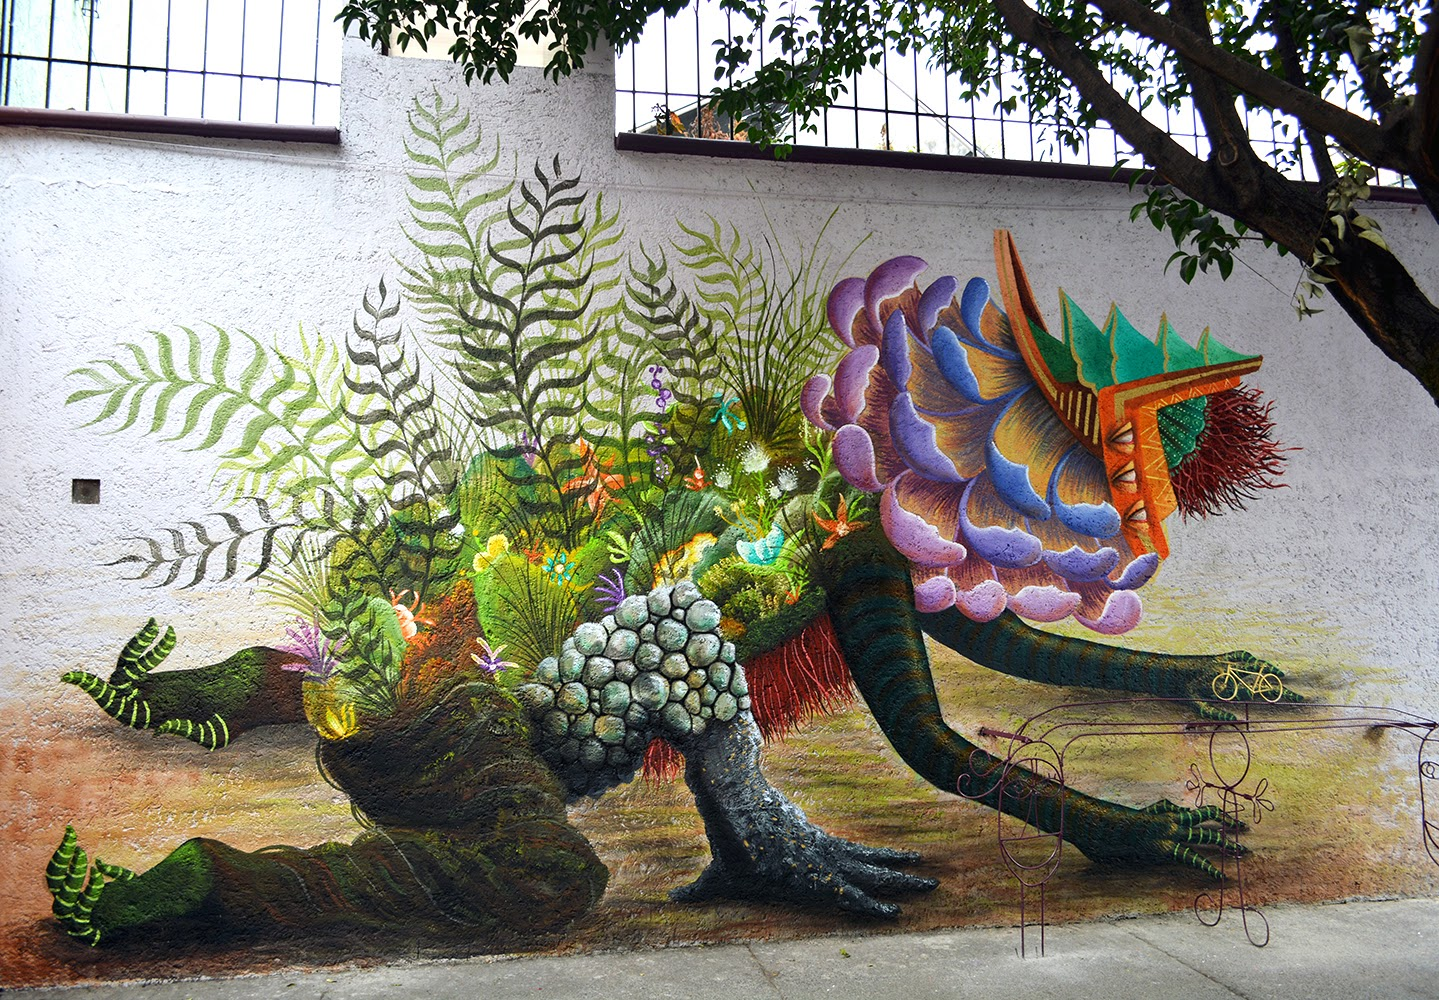 New Street Art Piece by Mexican Artist Curiot on the streets of Mexico City. 1